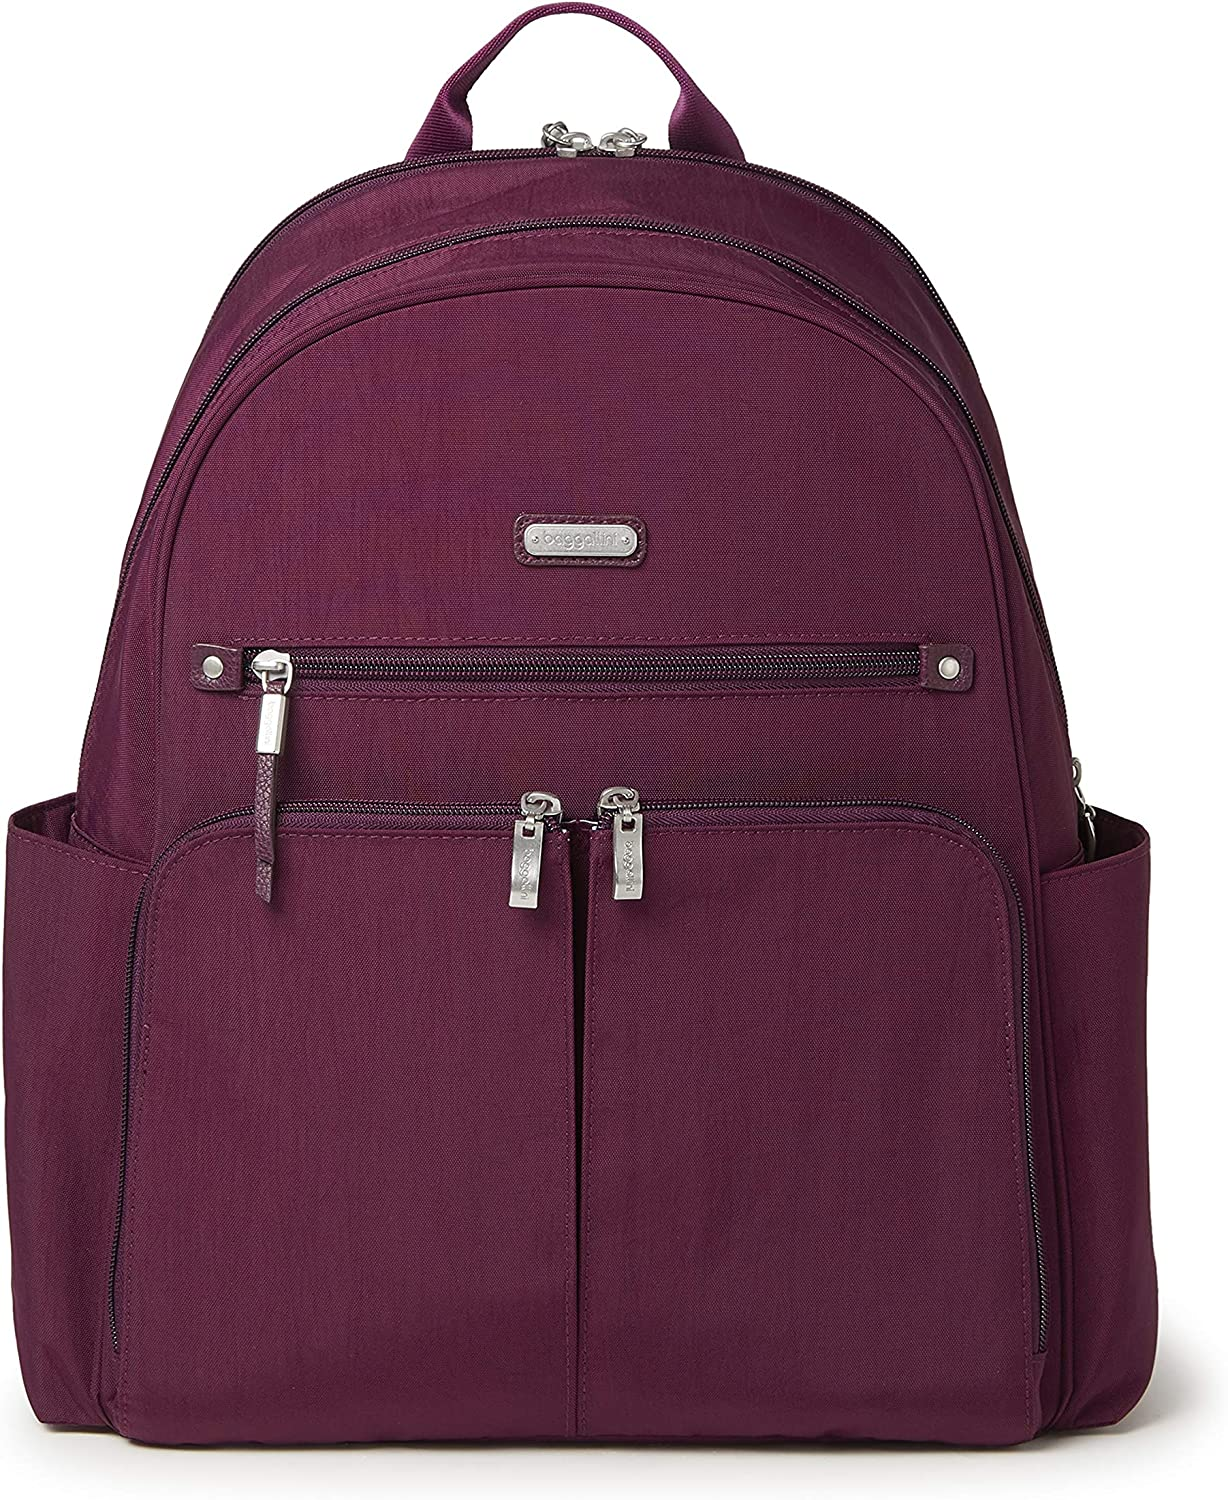 Baggallini New Classic Here and There Laptop Backpack